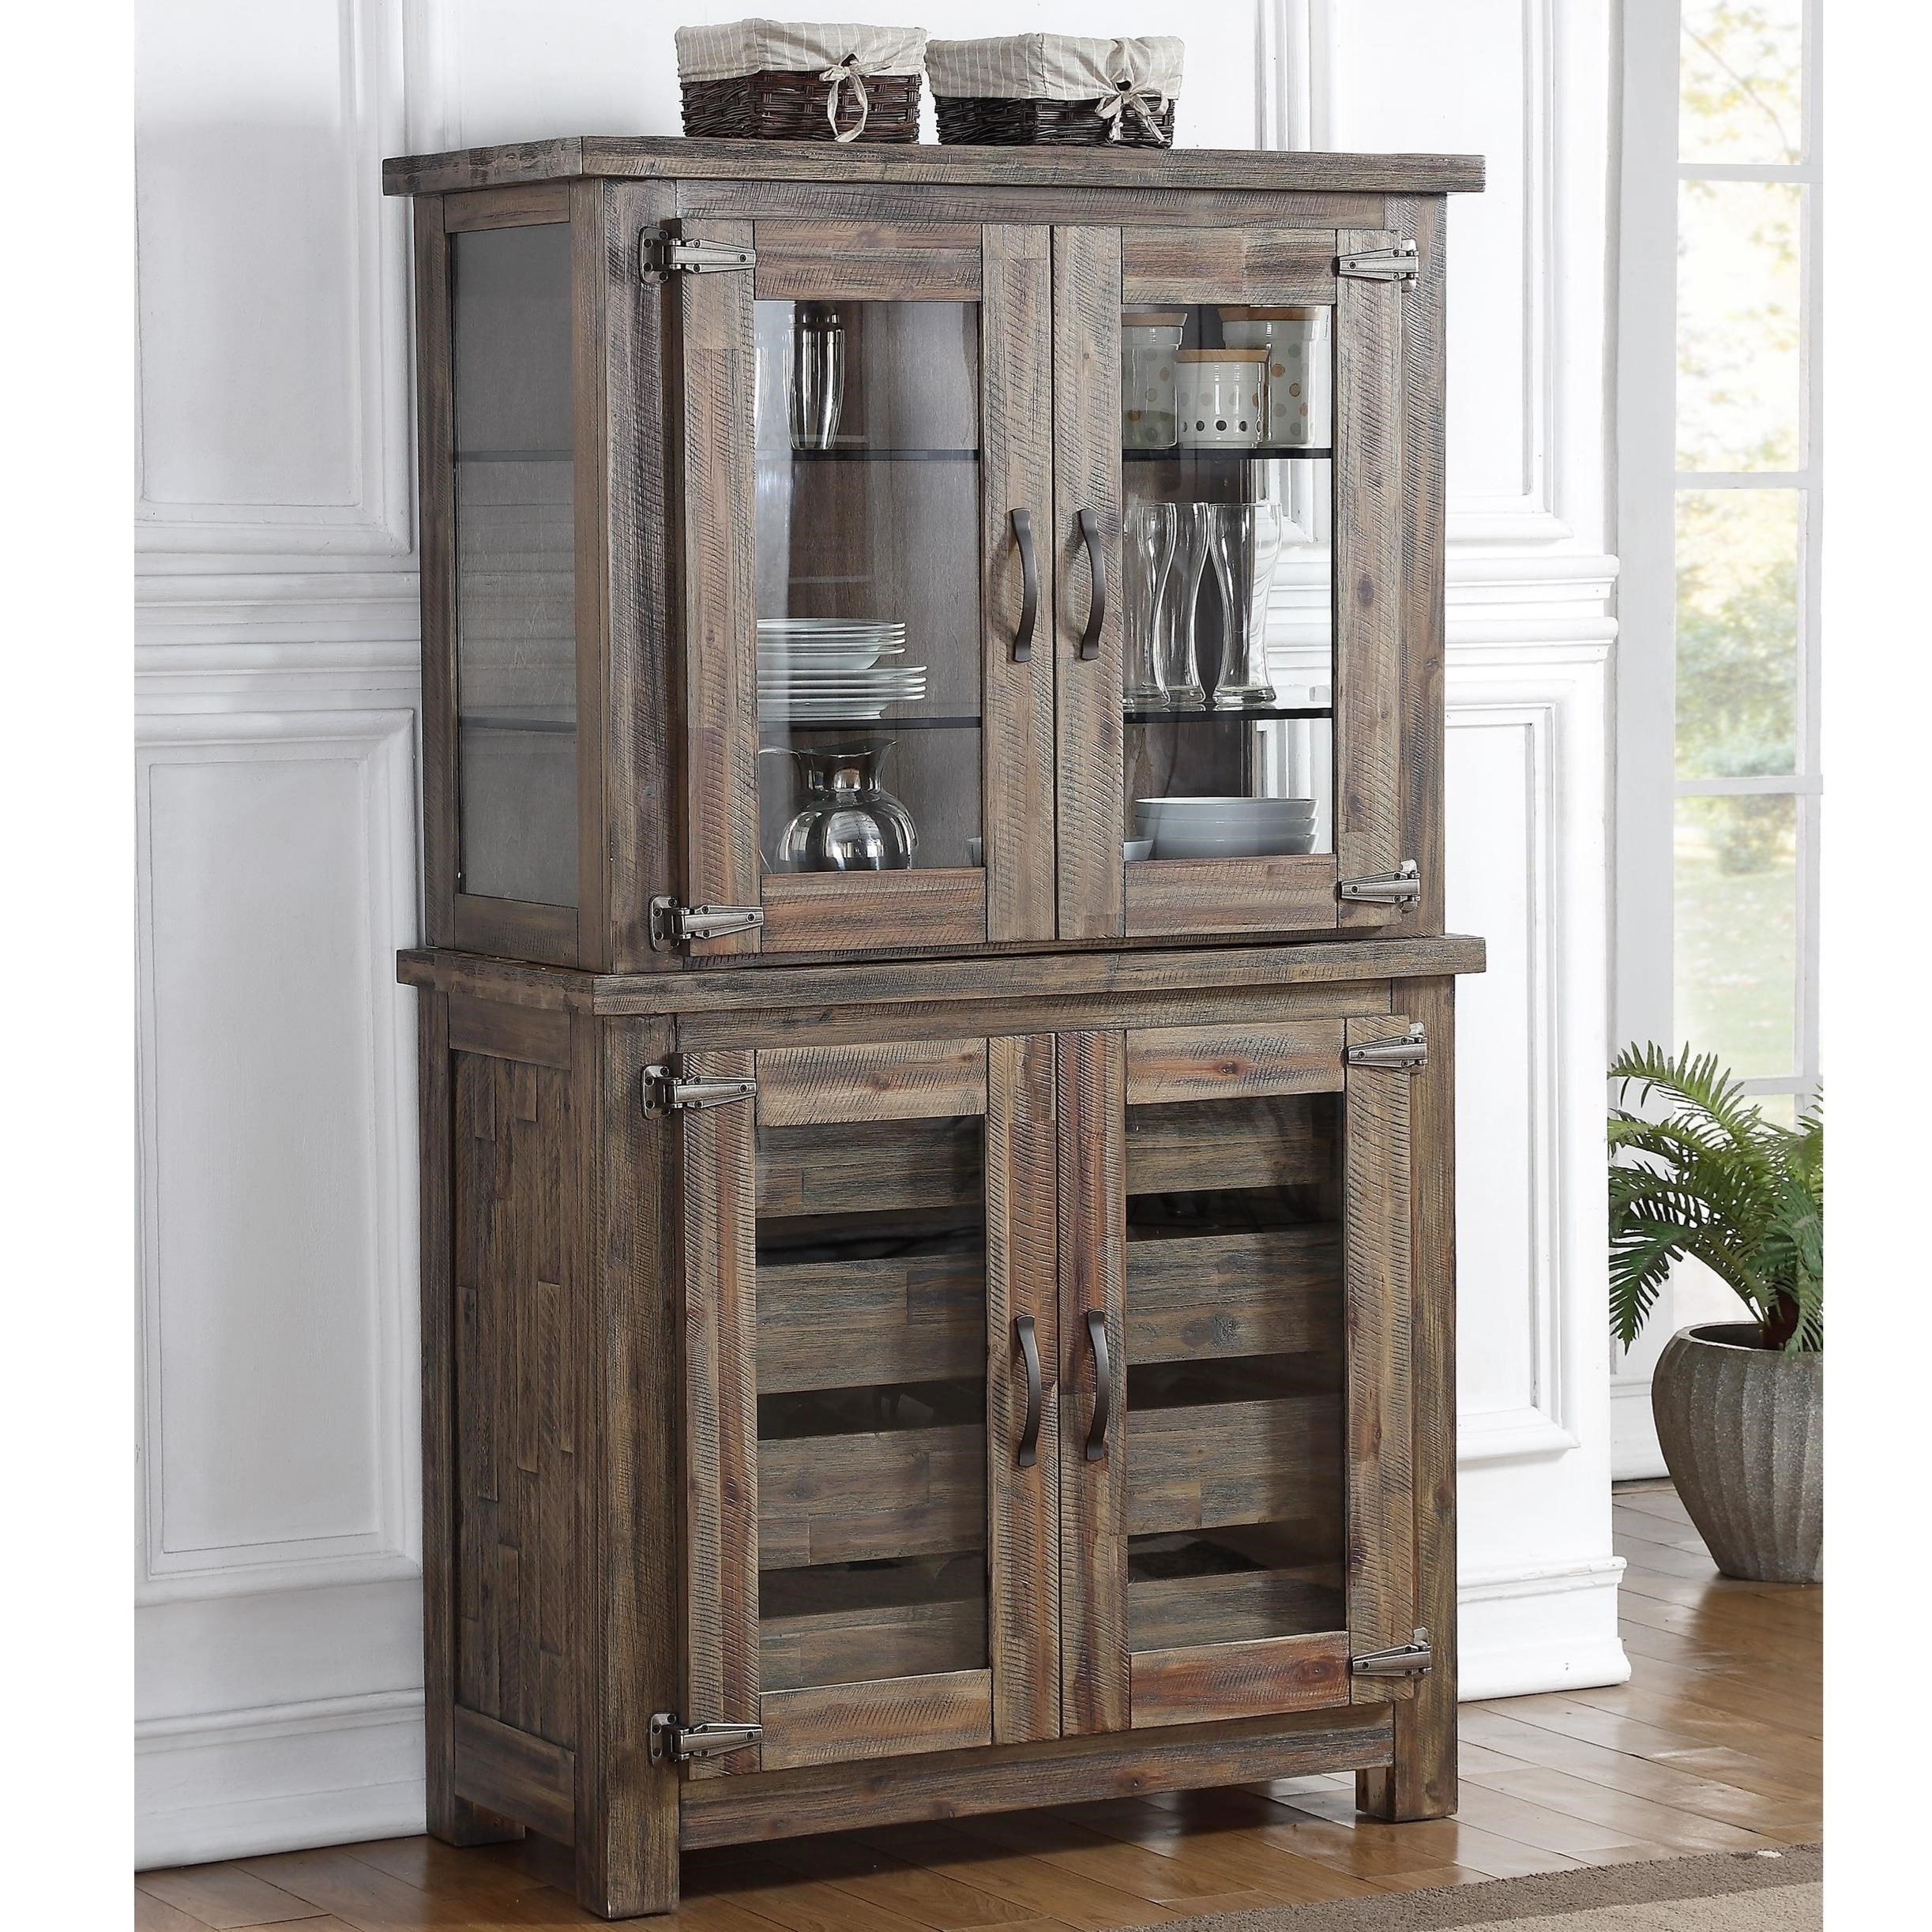 Tuscany Park Rustic Curio Cabinet With Built In Display Lights By New  Classic